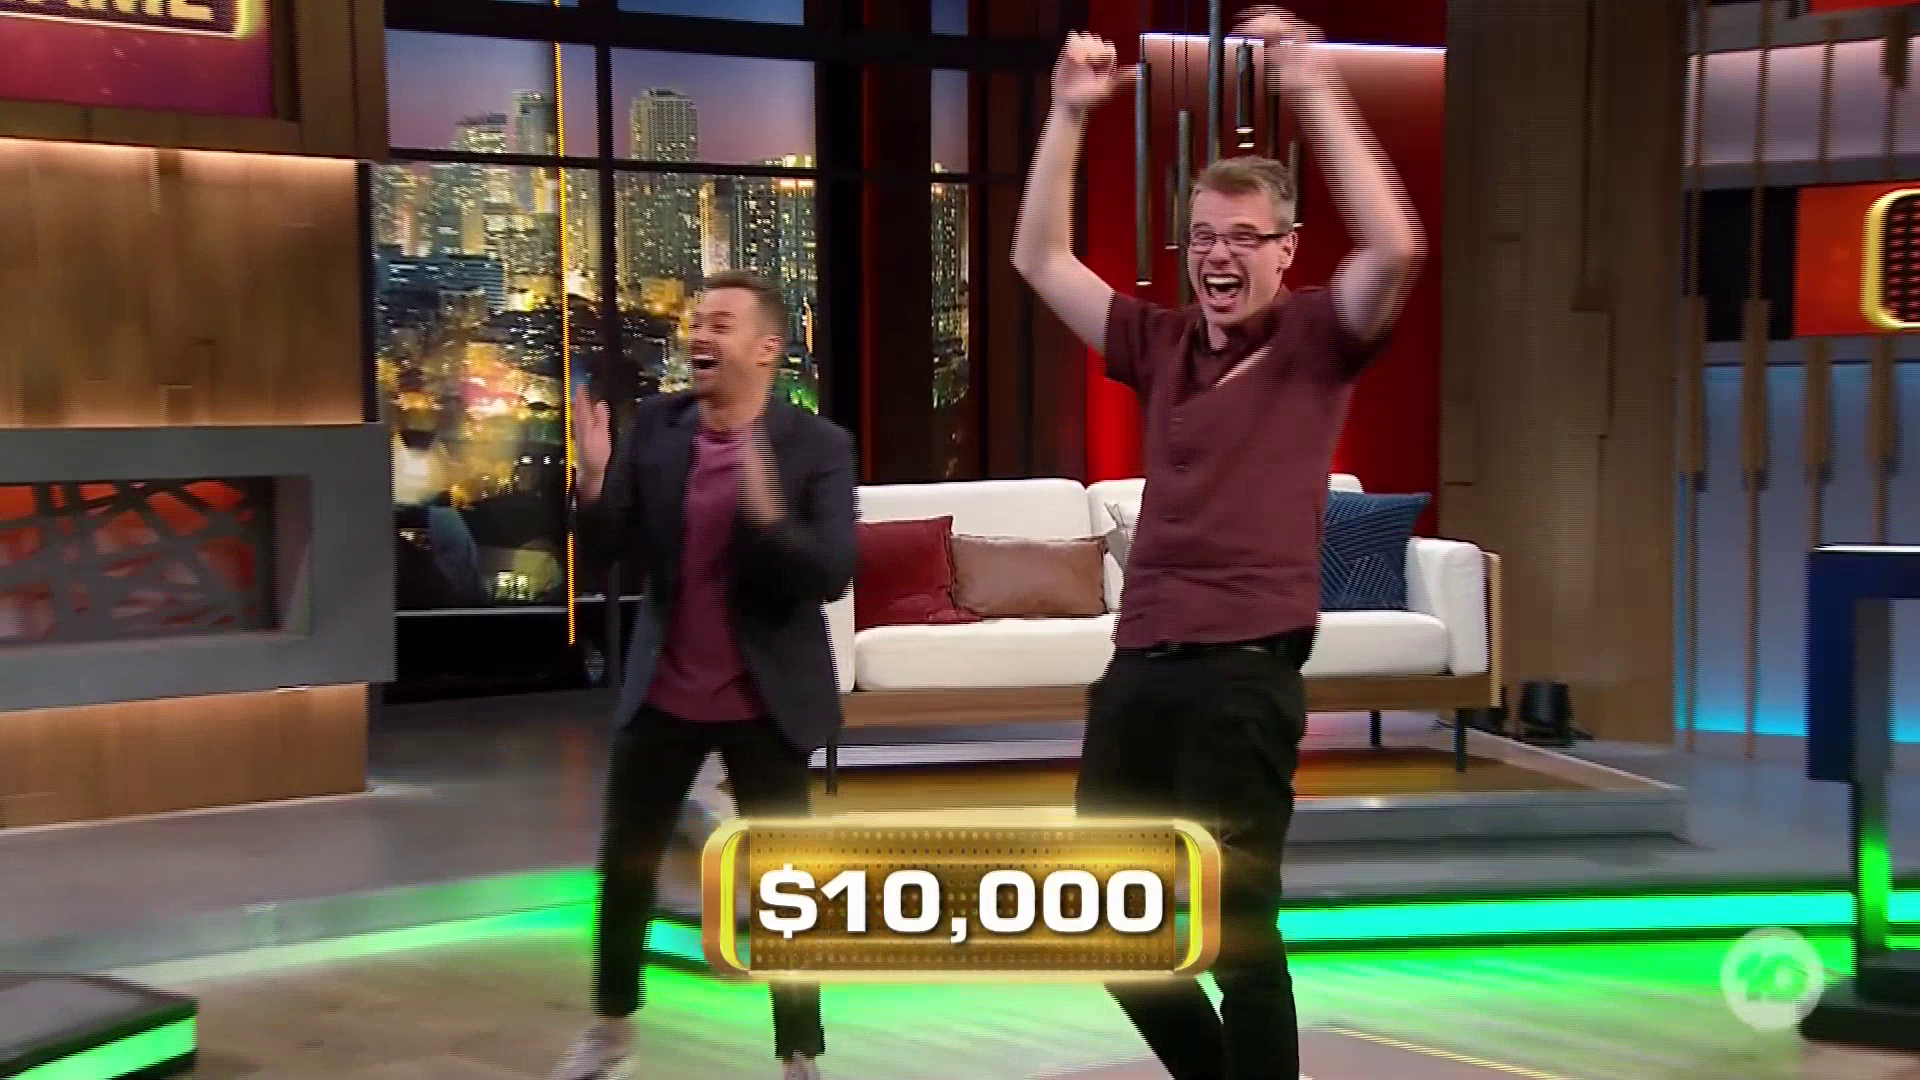 The moment former channel 10 employee ANDREW LOGUE wins $10,000